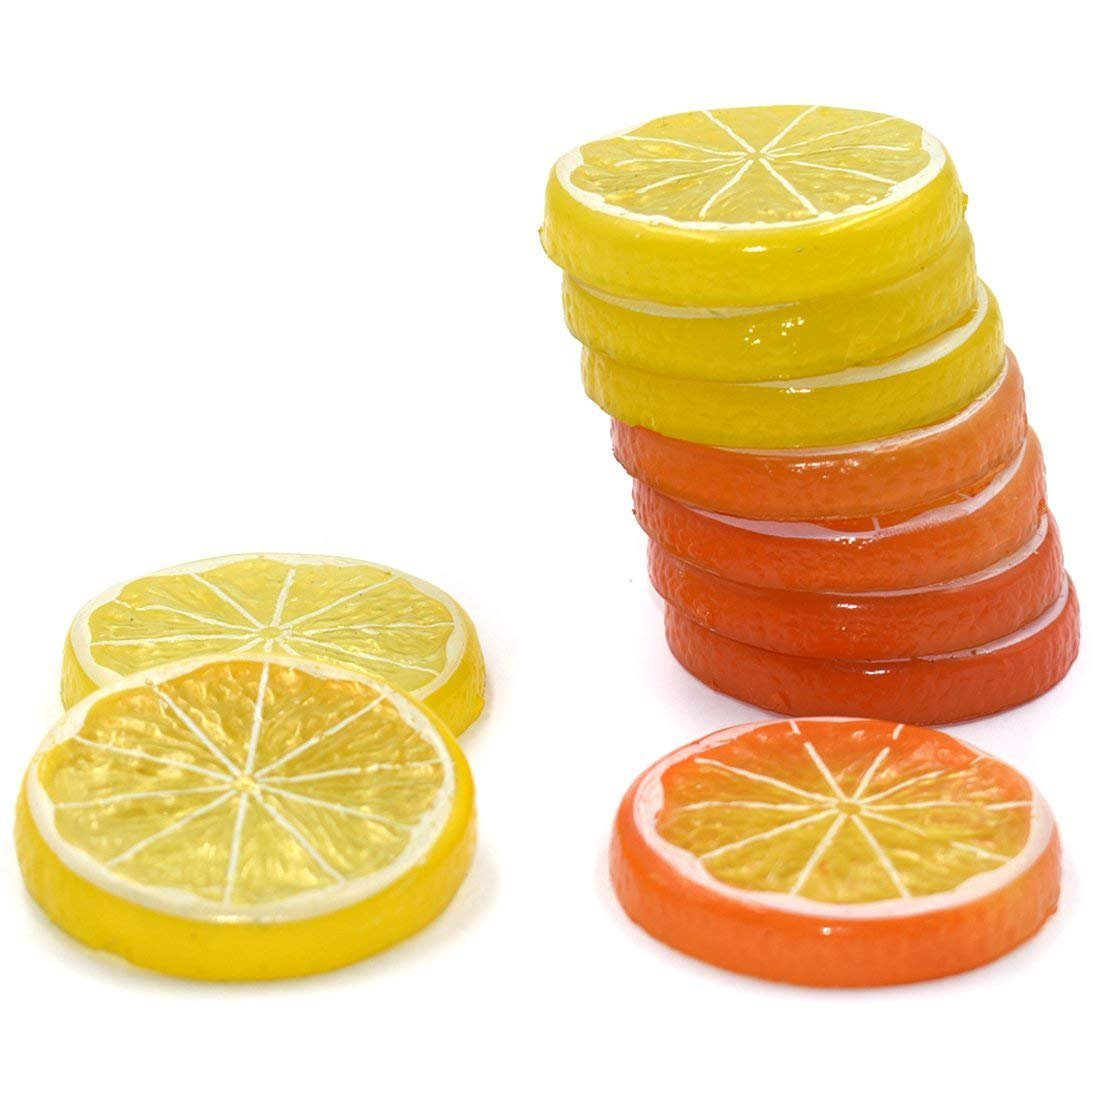 DLUcraft 10PCS Yellow Orange Highly Simulation Fake Lemon Slice Mixed color Artificial Fruit Model Home Party Decoration